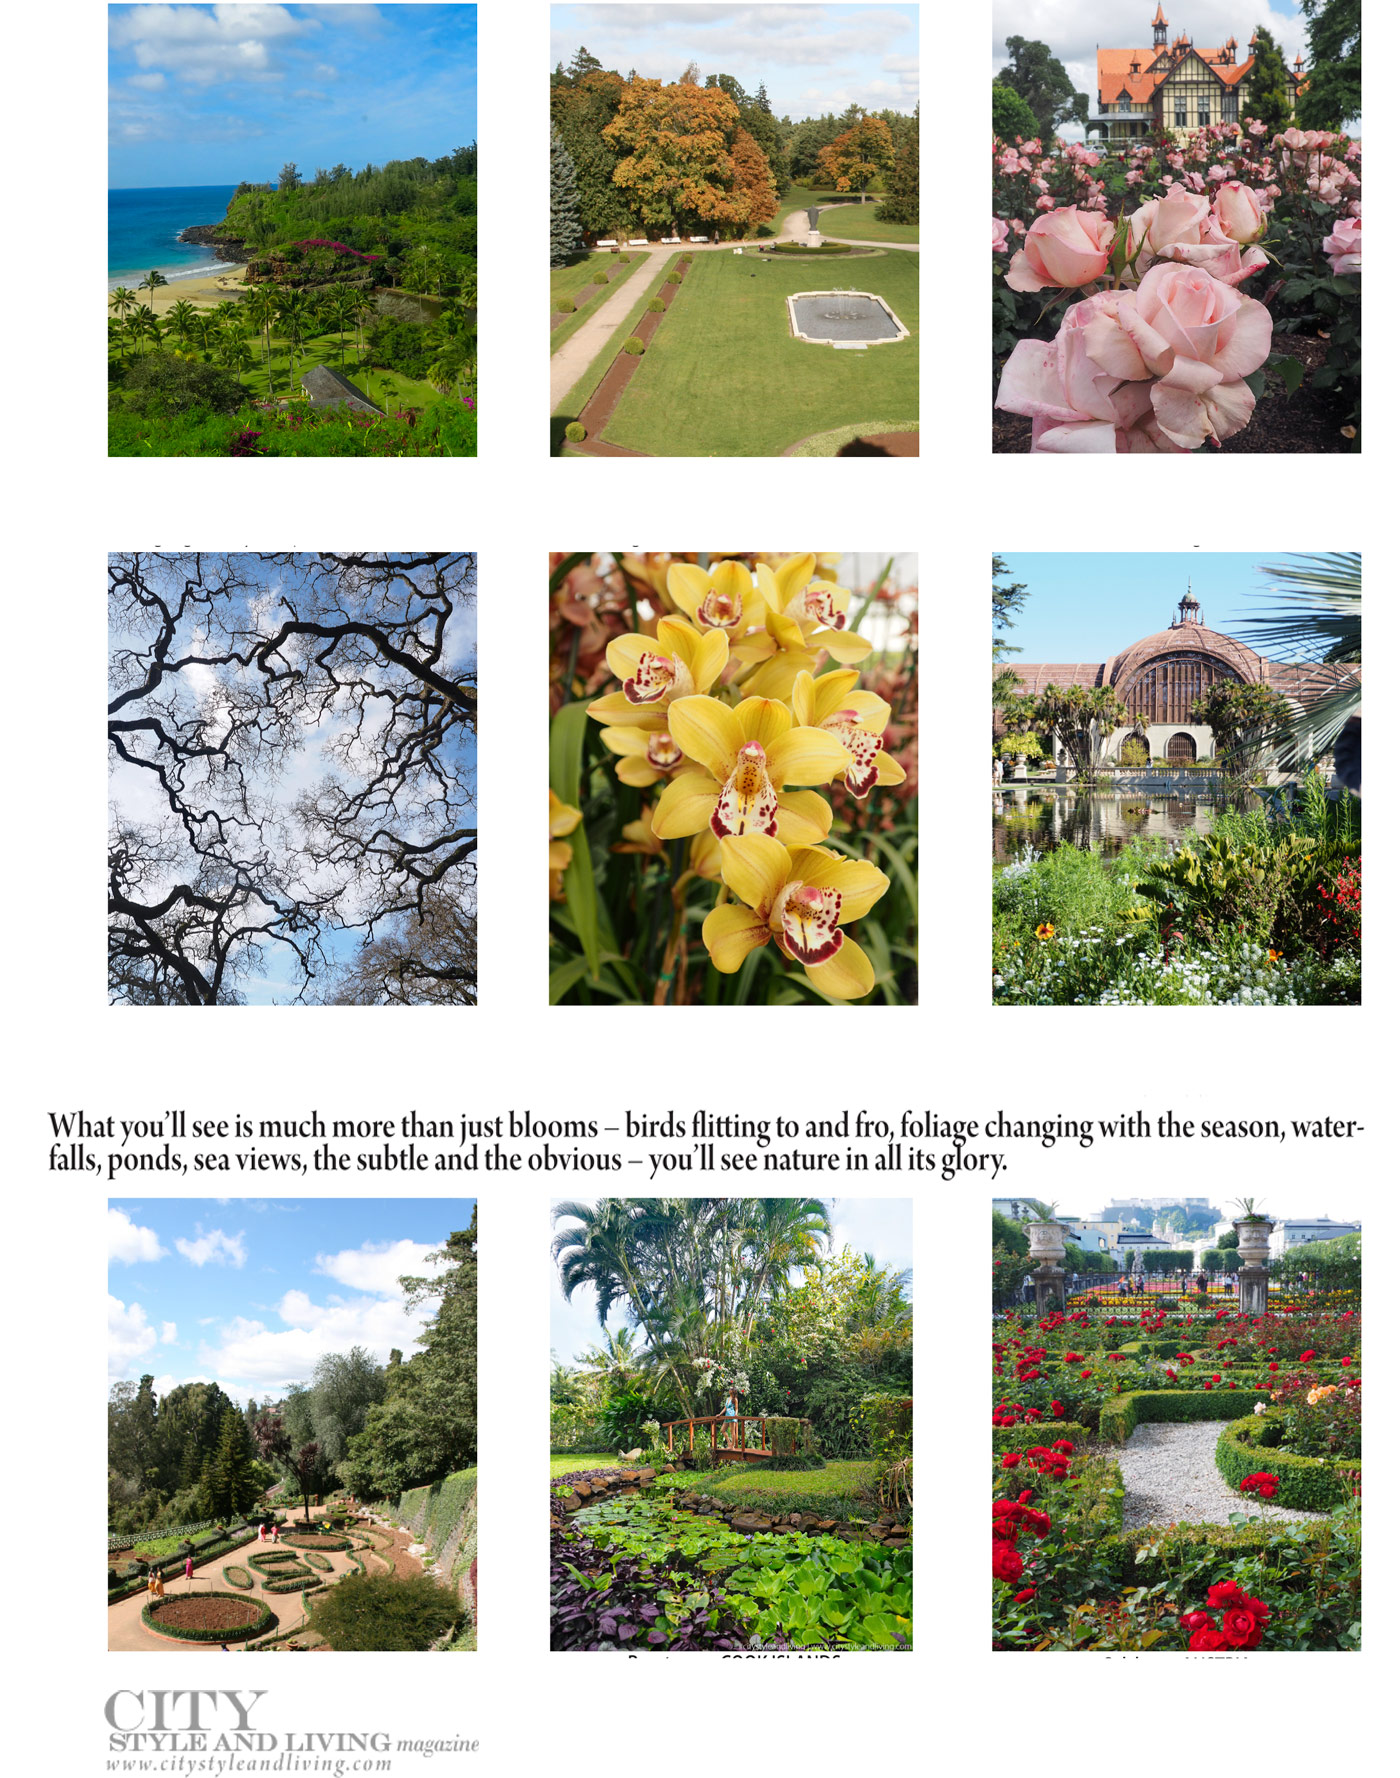 City Style and Living Spring 2021 Global Gardens: A Tour Around Some of the Prettiest Spots in the World